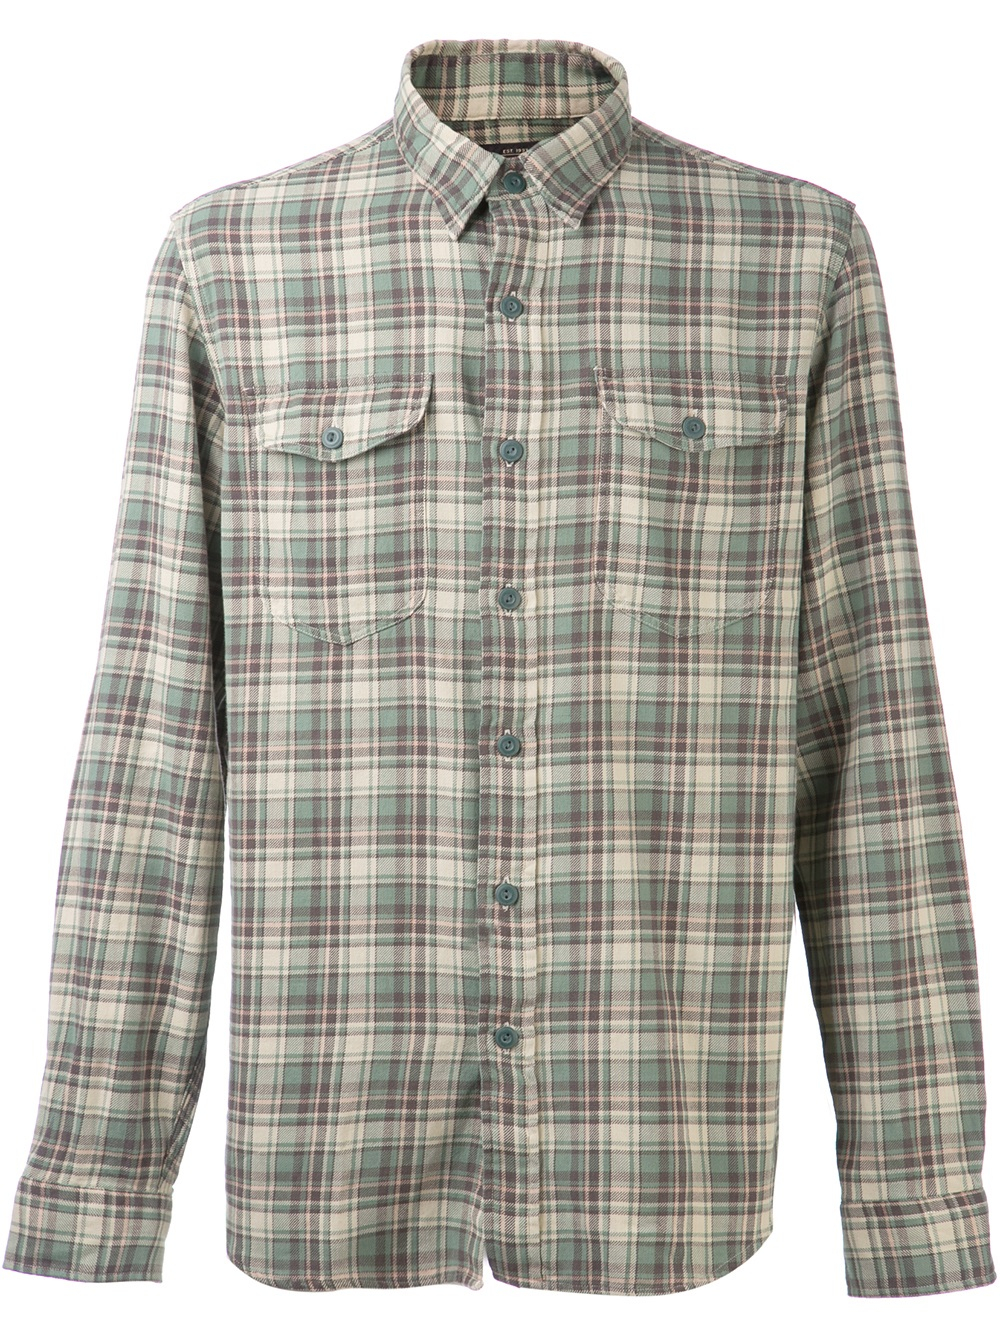 Lyst Rrl Plaid Flannel Shirt In Green For Men